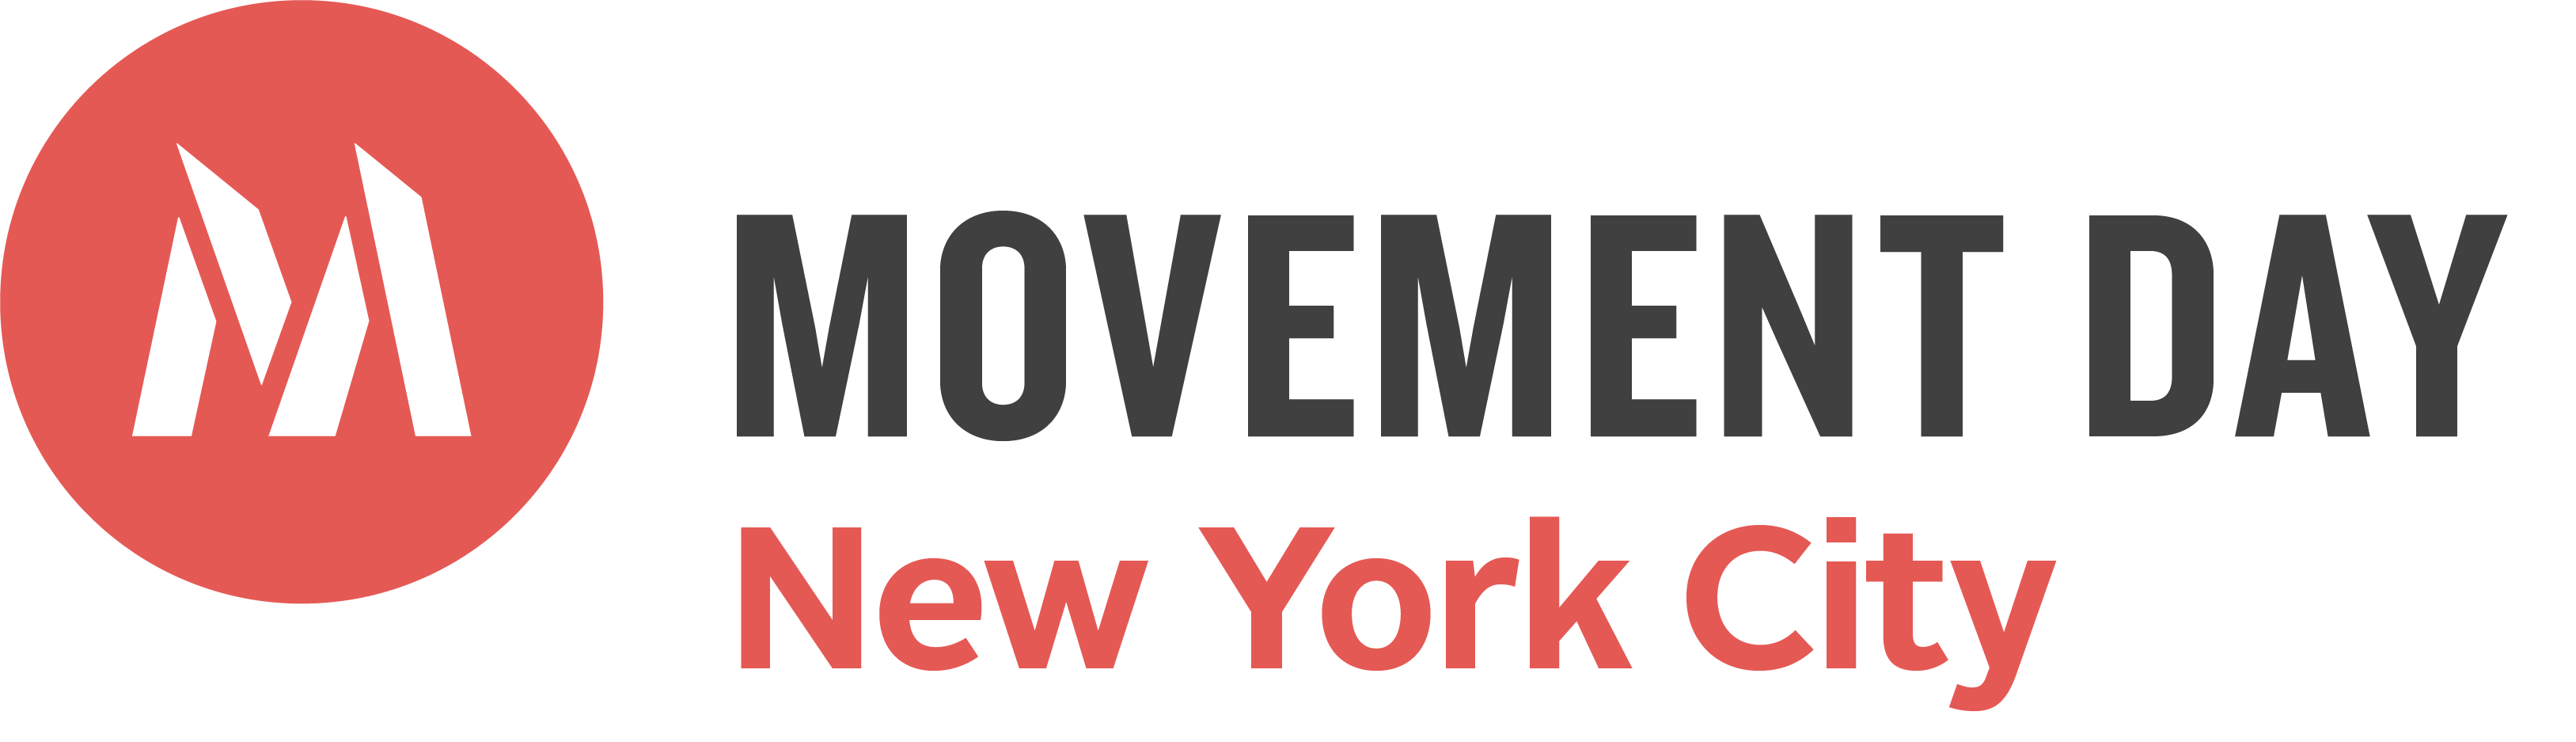 Movement Day New York City 2017 logo